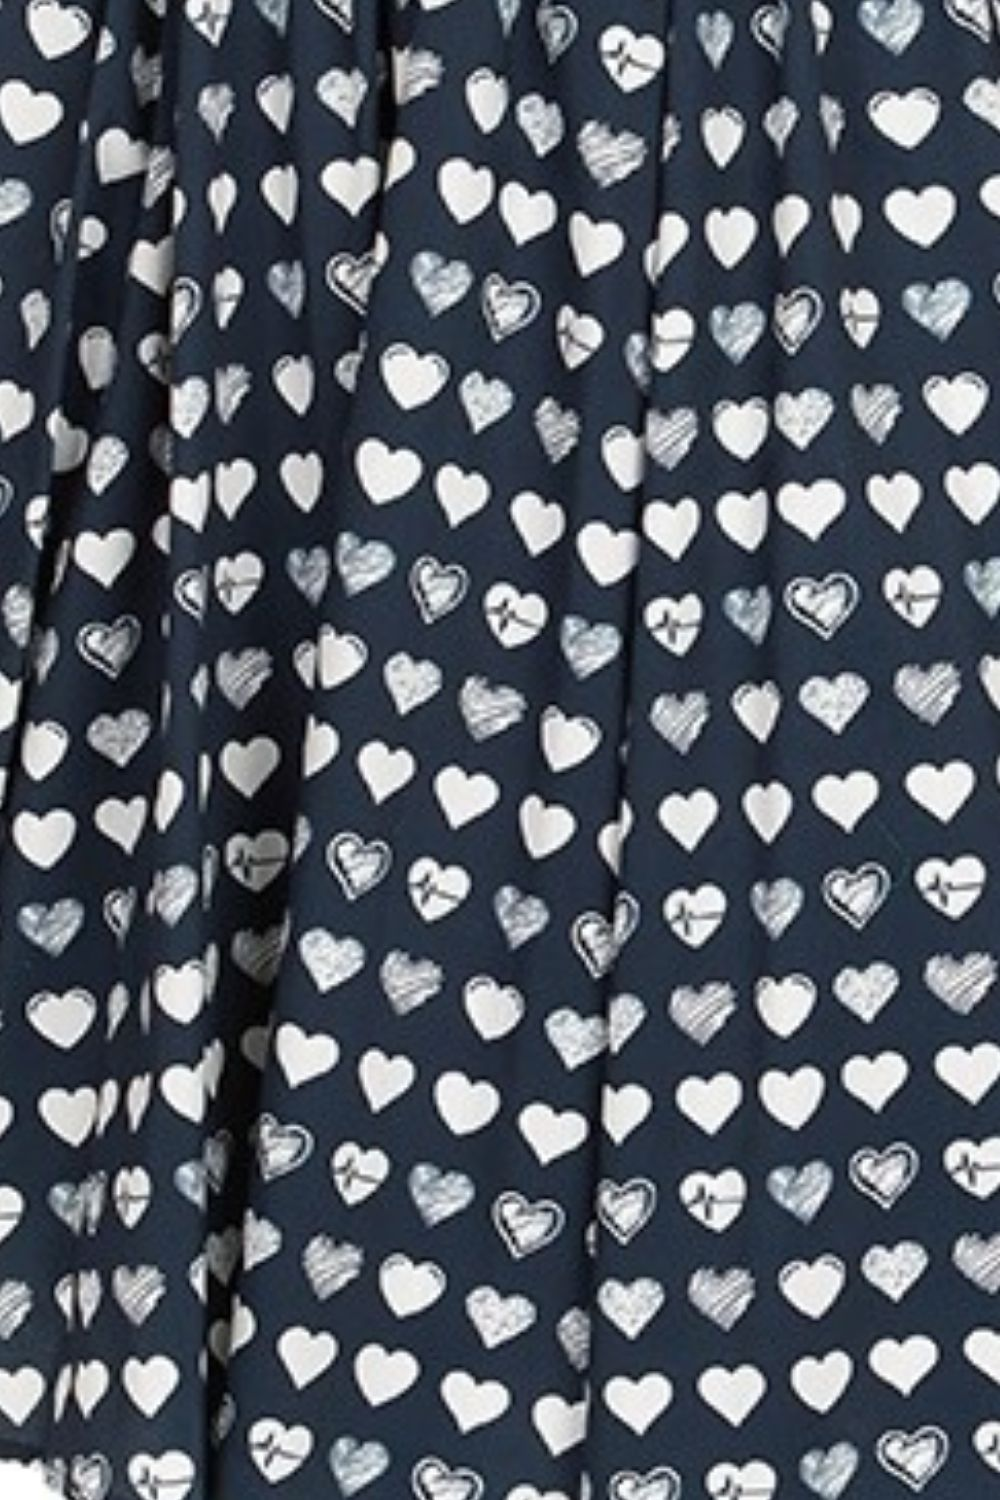 Retro Heart Print Dress